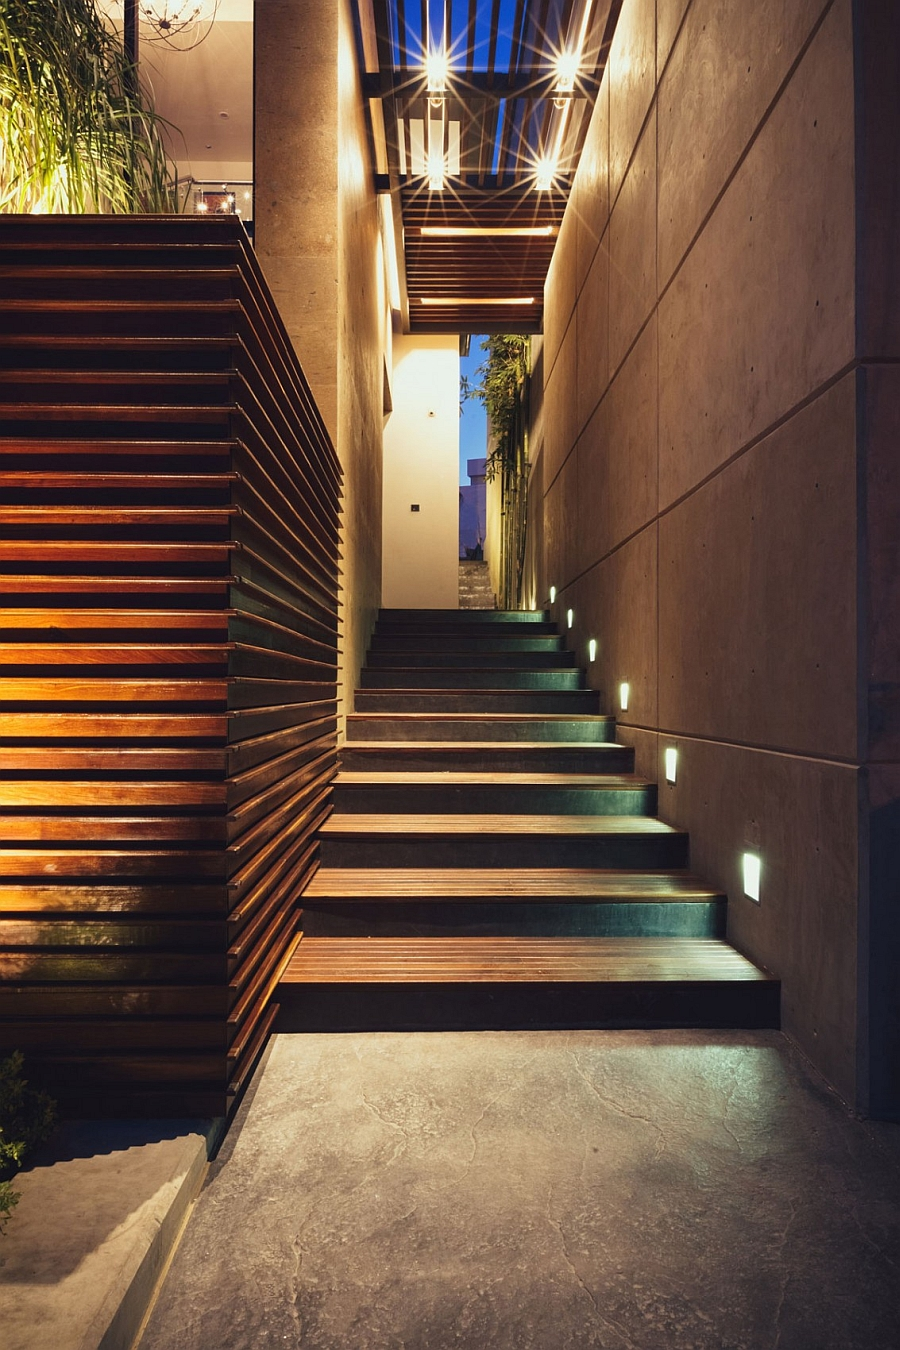 Beautifully-lit-pathway-inside-the-Luxurious-Private-Residence-In-Mexico-Makes-Enhancing-The-Landscape